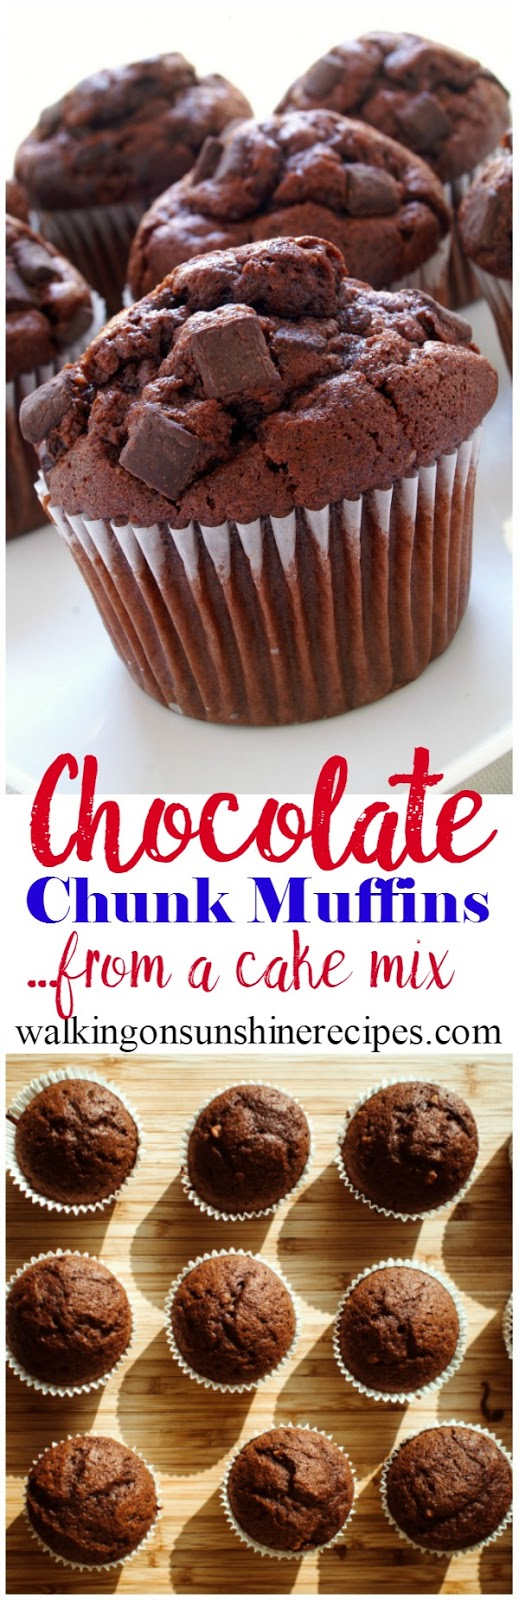 How to Make the Best Chocolate Chunk Muffins from a Cake Mix ...